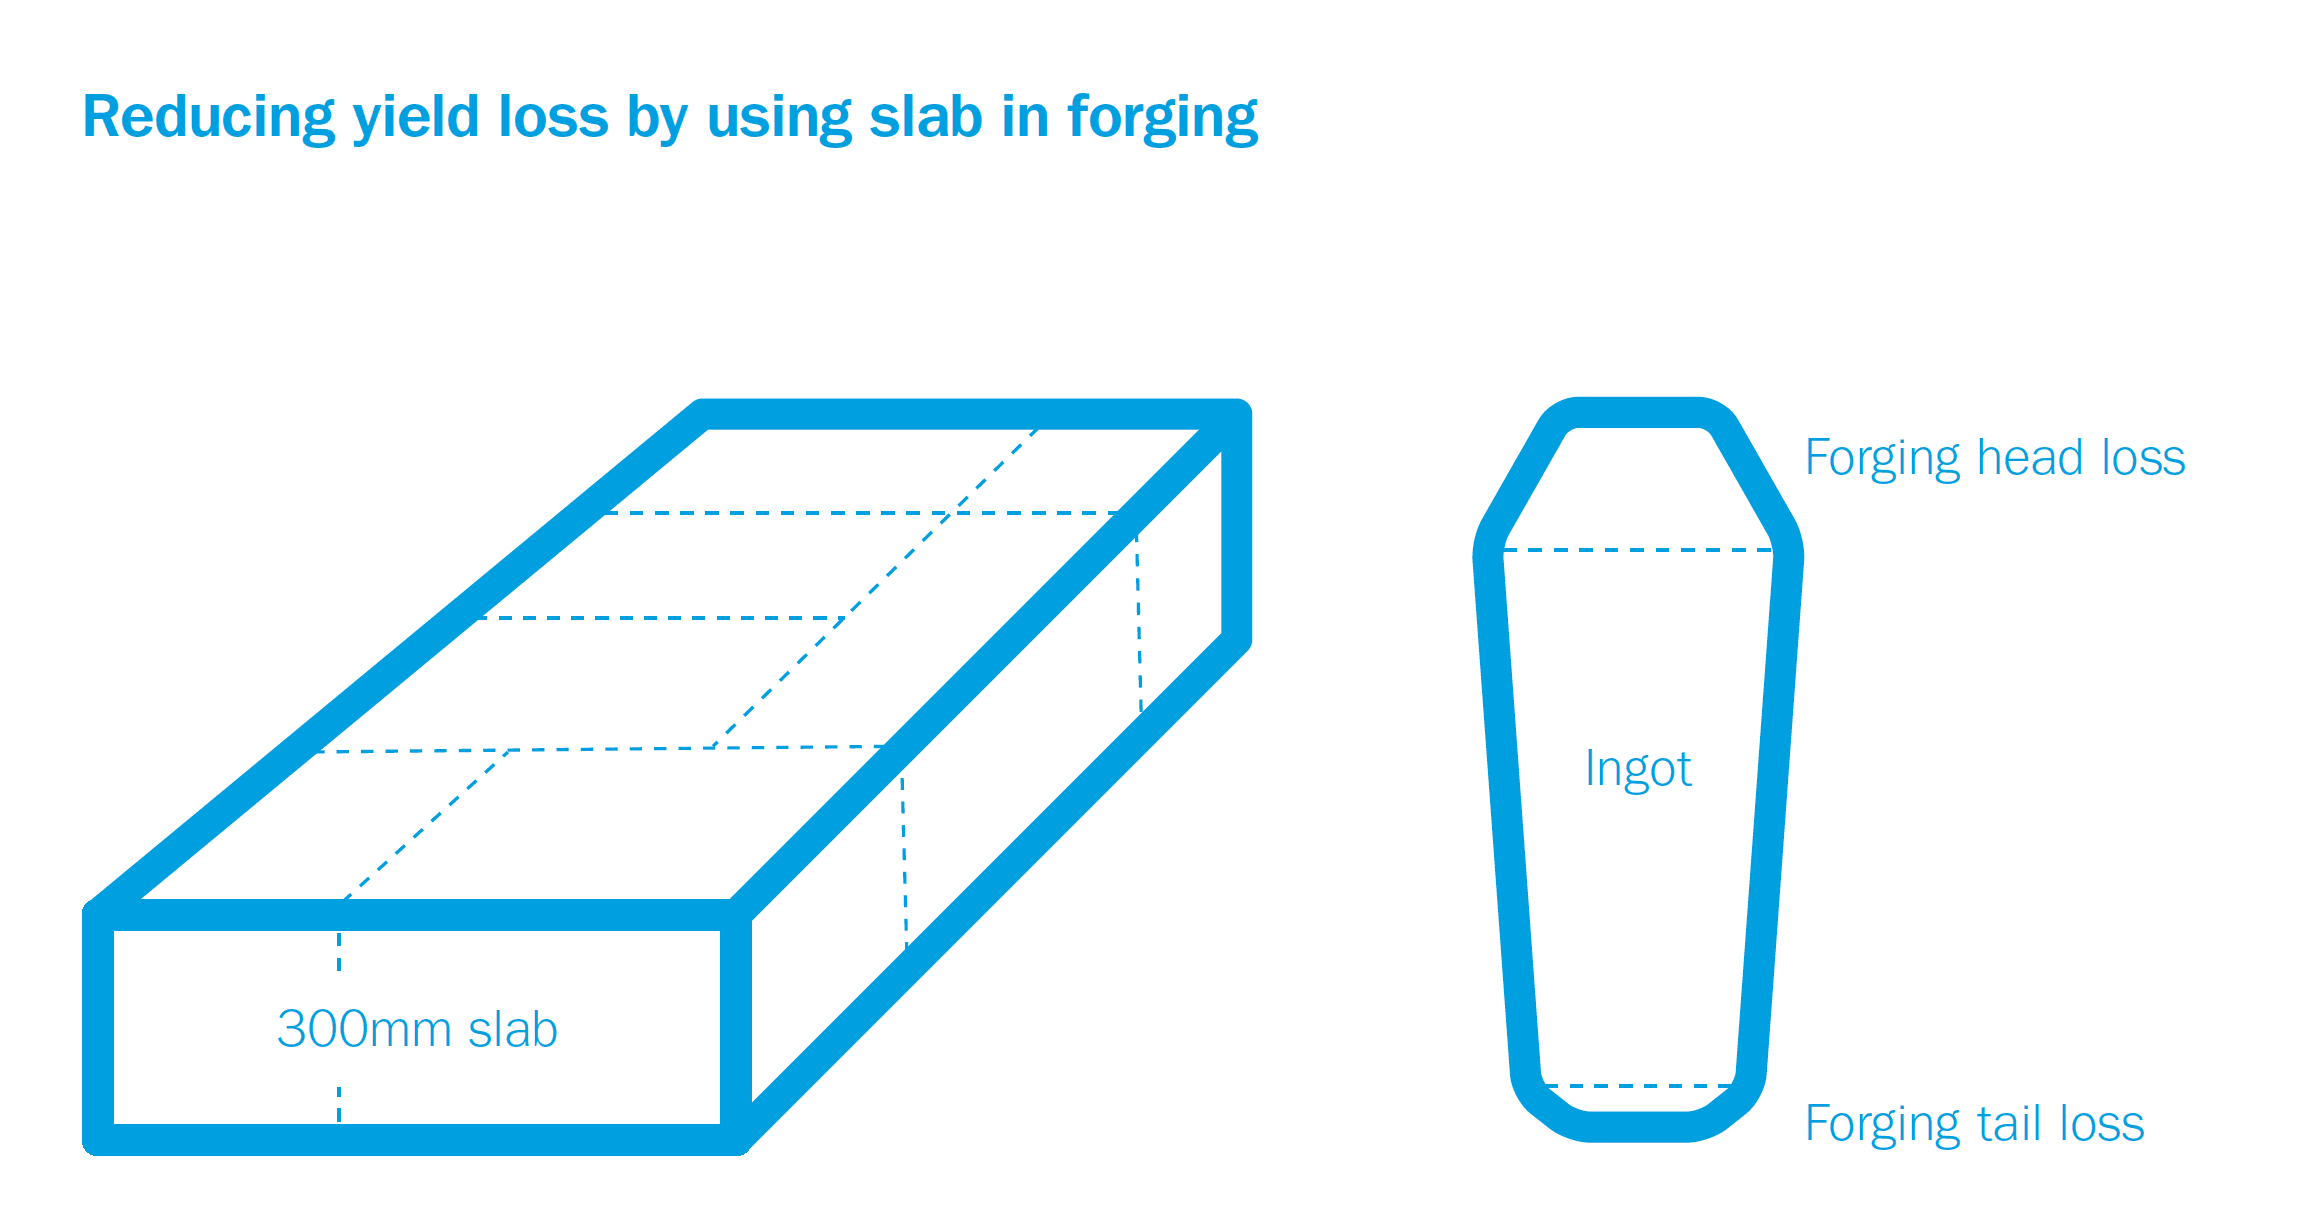 Reducing yield loss by using slab in forging